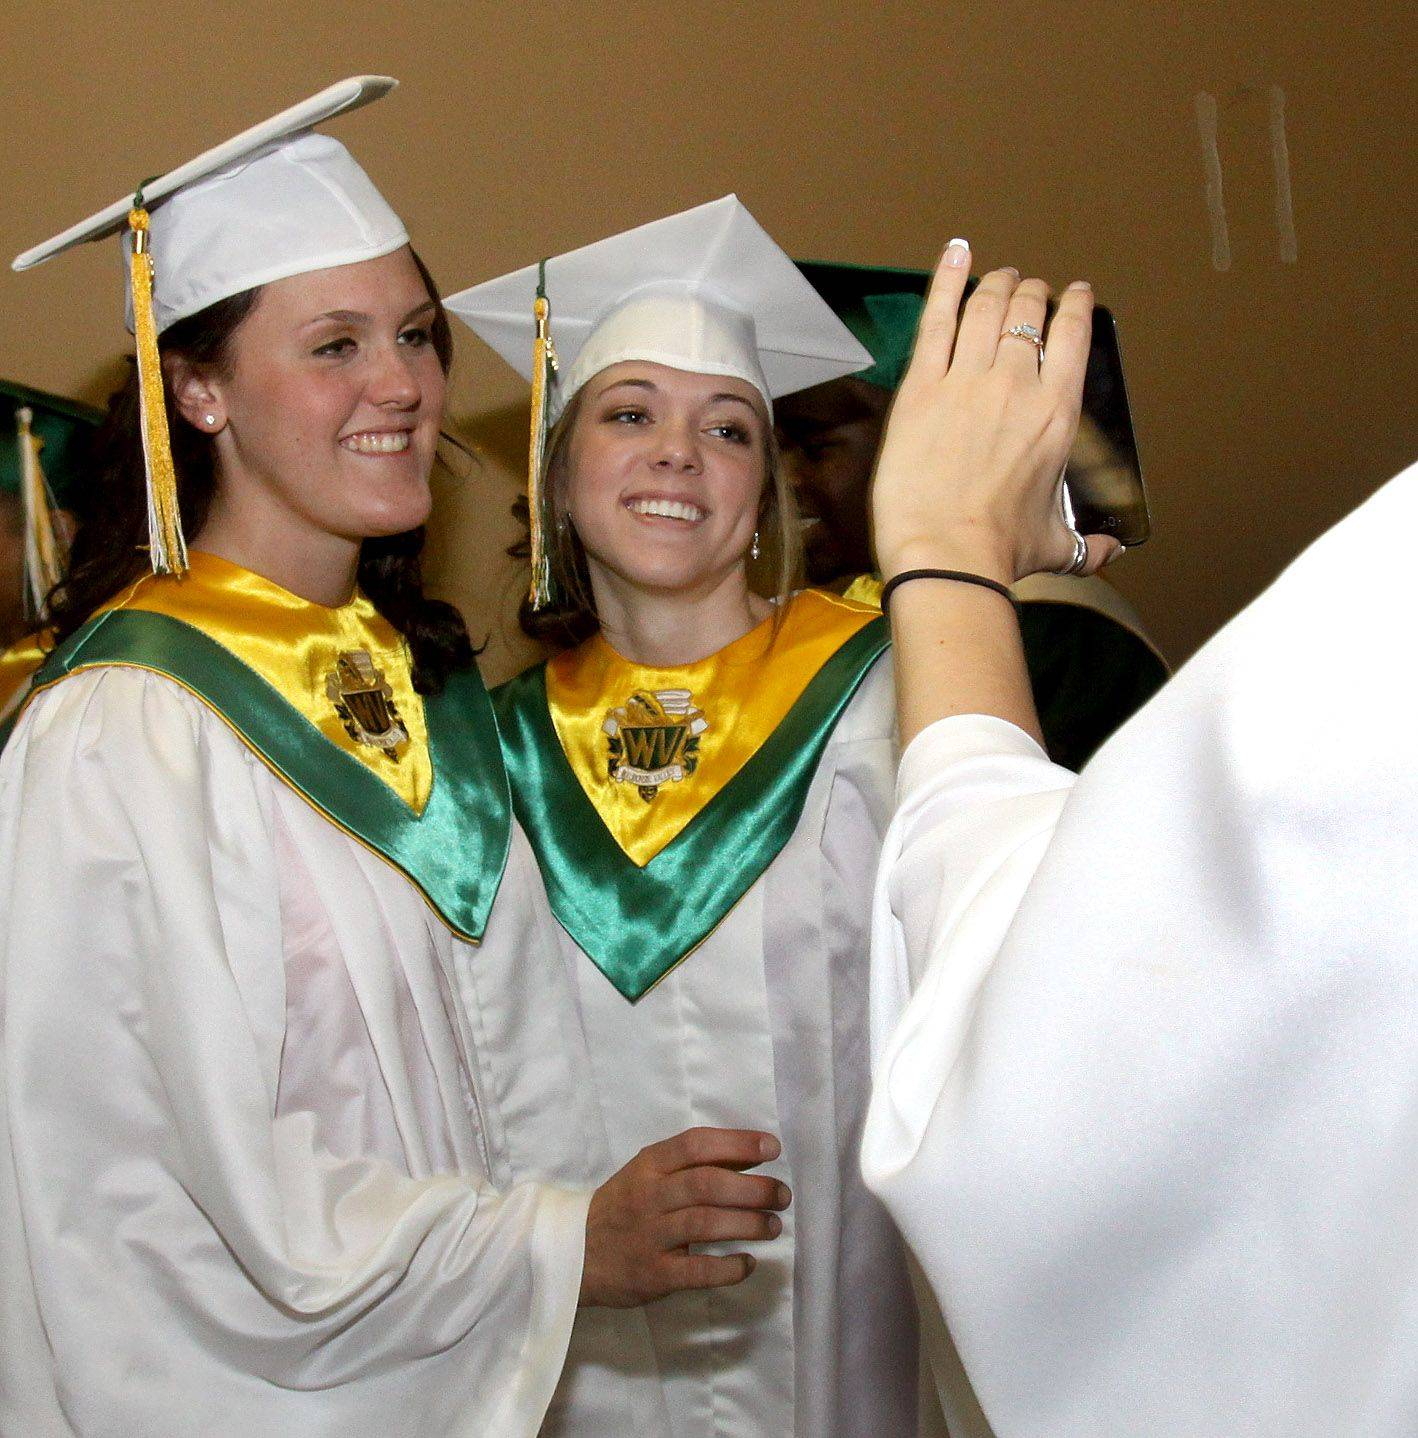 Celena Maskel, left and Maggie Miklasz, right, get a photo taken as they get ready for the Waubonsie Valley High School graduation at College of DuPage in Glen Ellyn on Sunday.